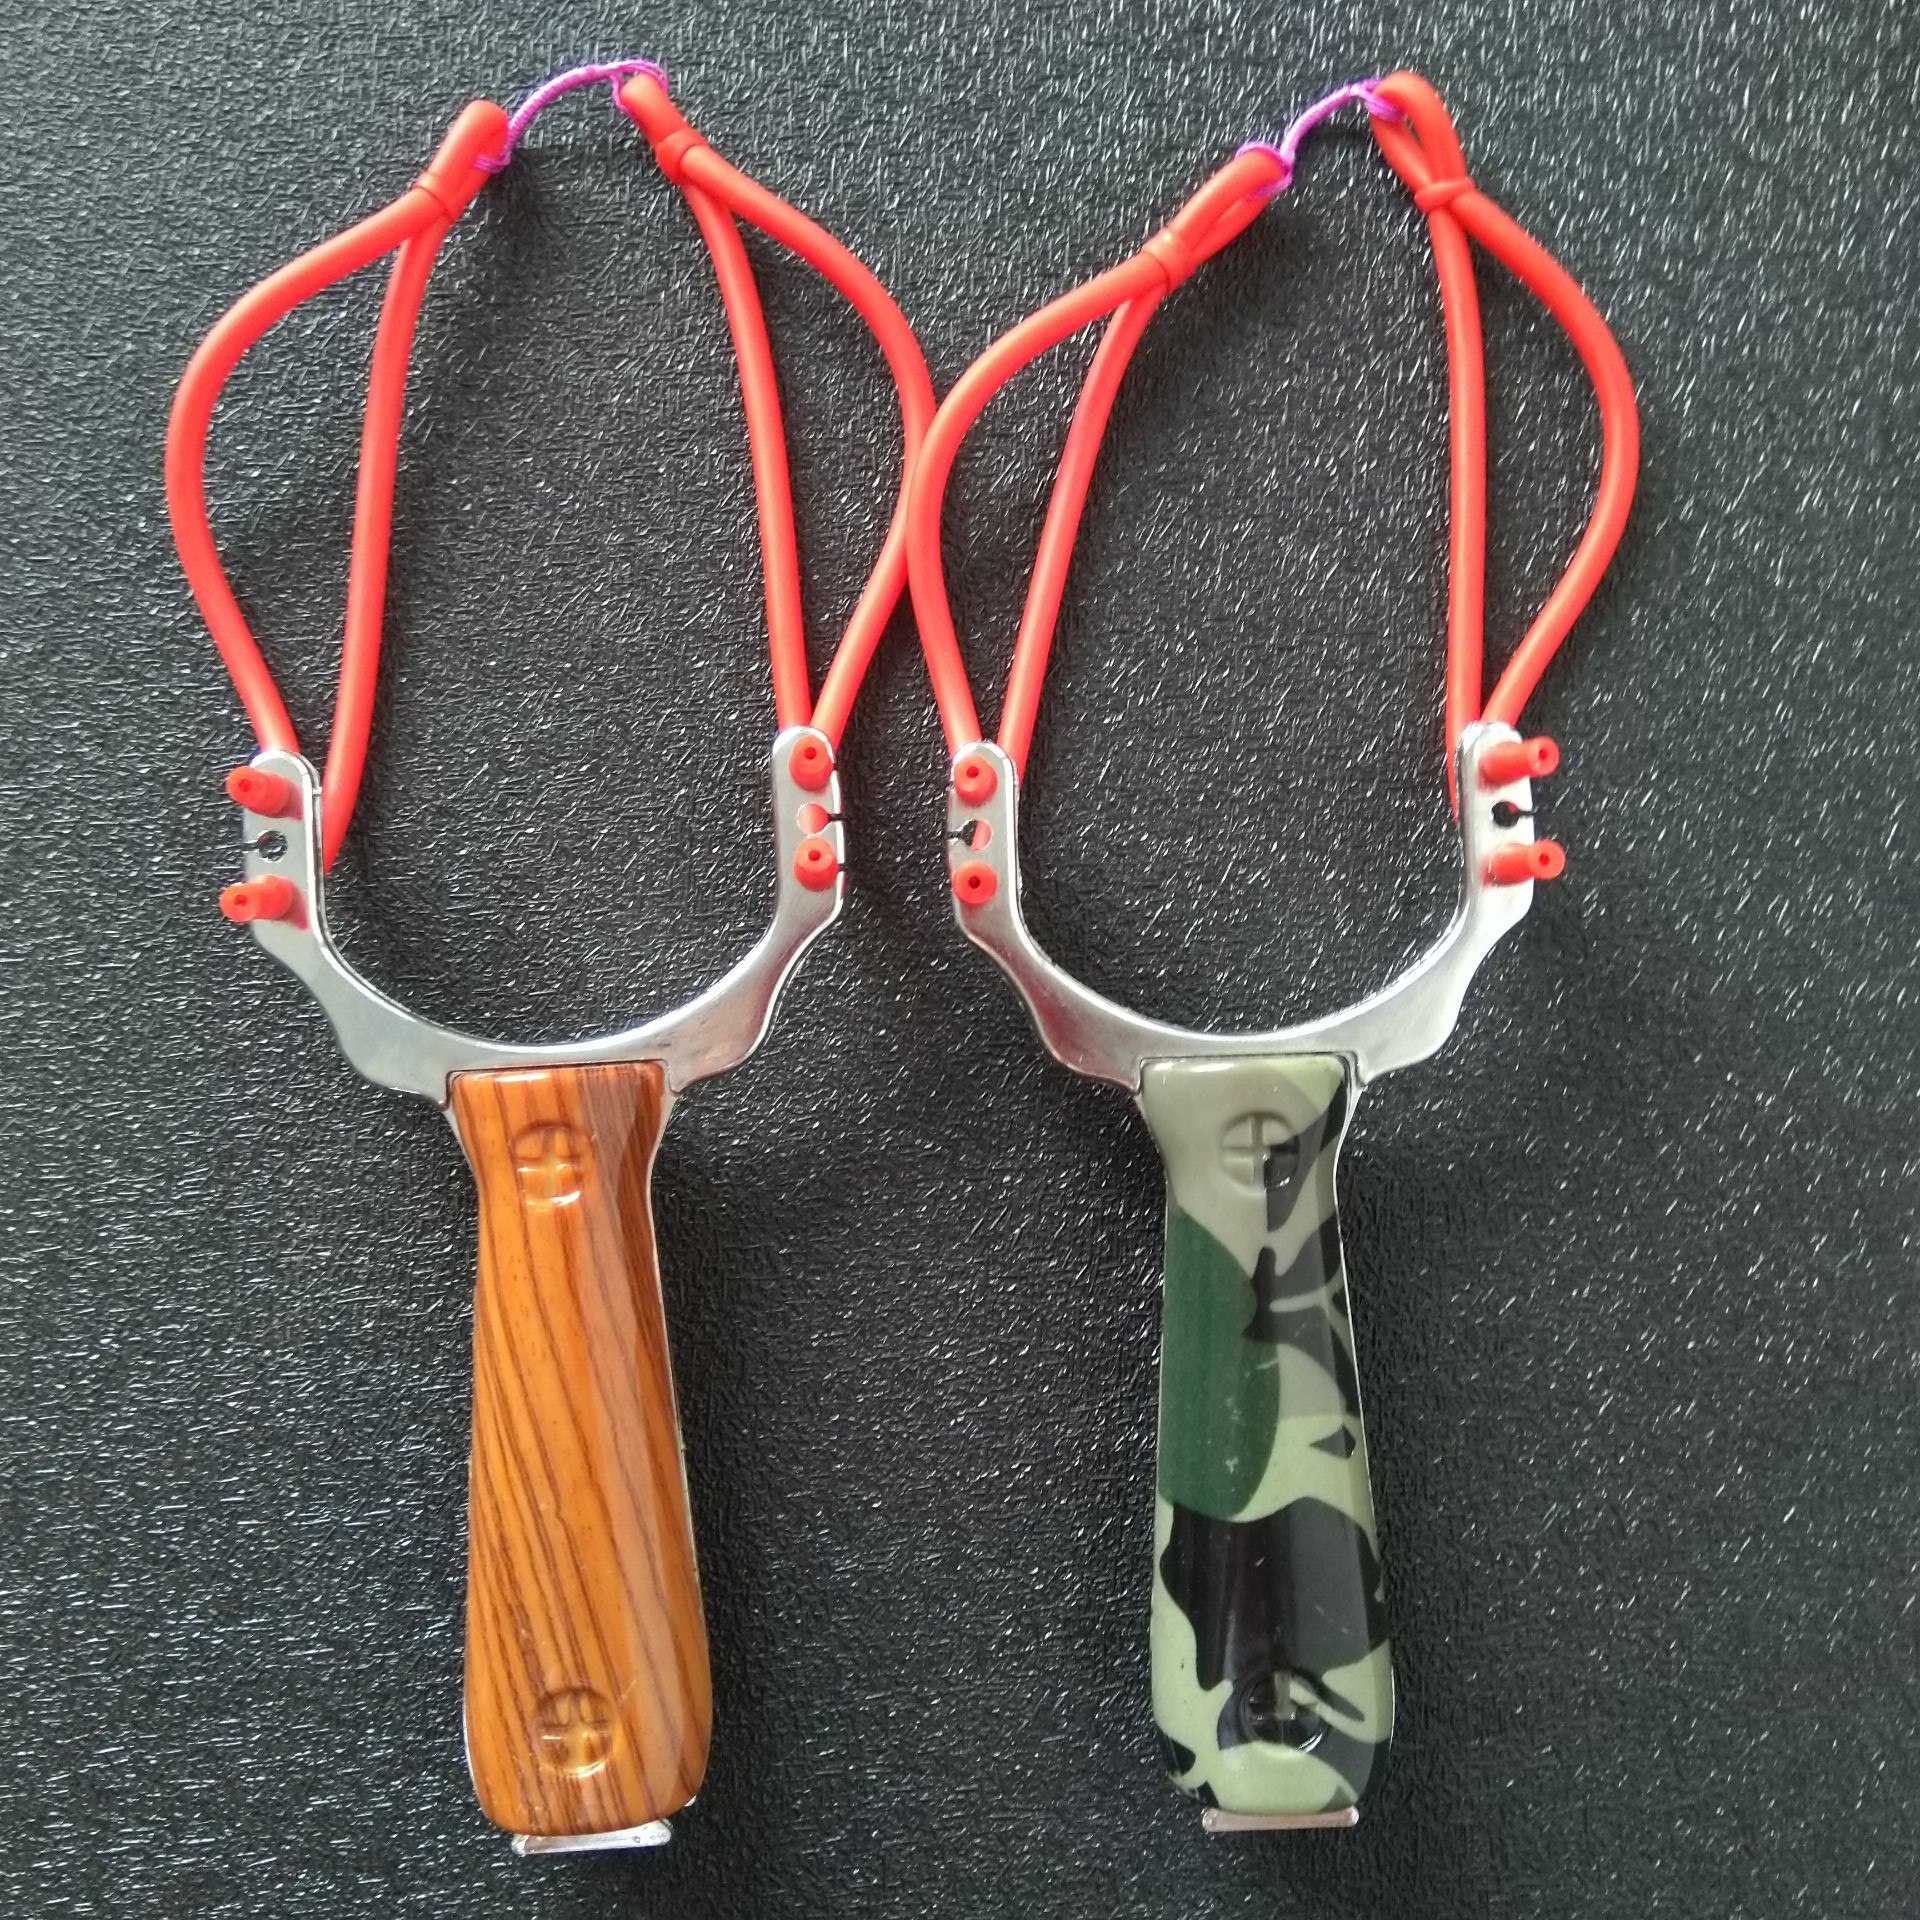 Professional Powerful Slingshot Sling shot Aluminium Alloy Catapult Slingshot Camouflage Bow Outdoor Slingshot Hunting Bow(China)